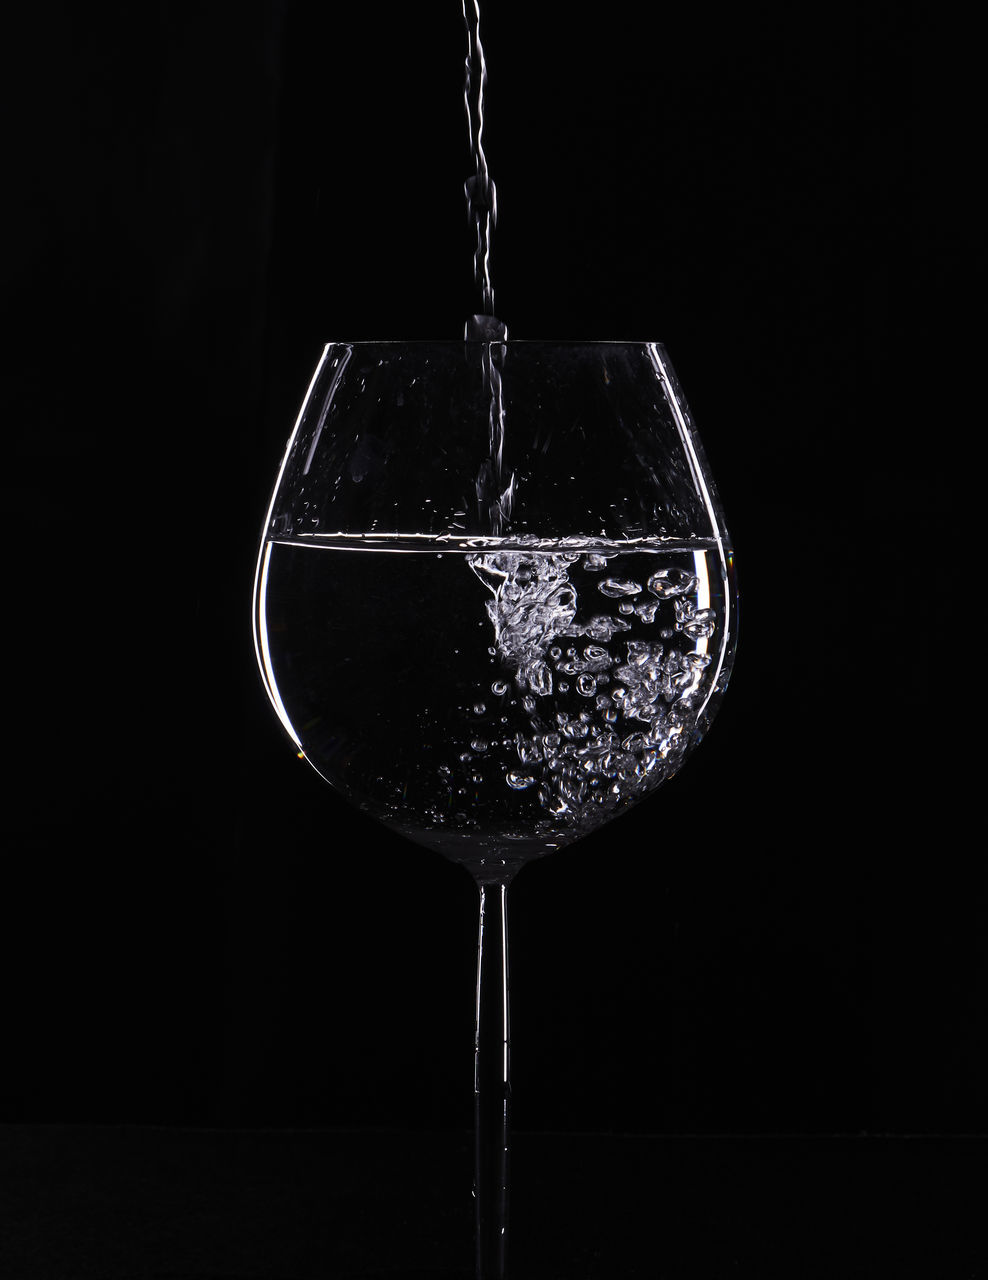 CLOSE-UP OF WINEGLASS IN GLASS